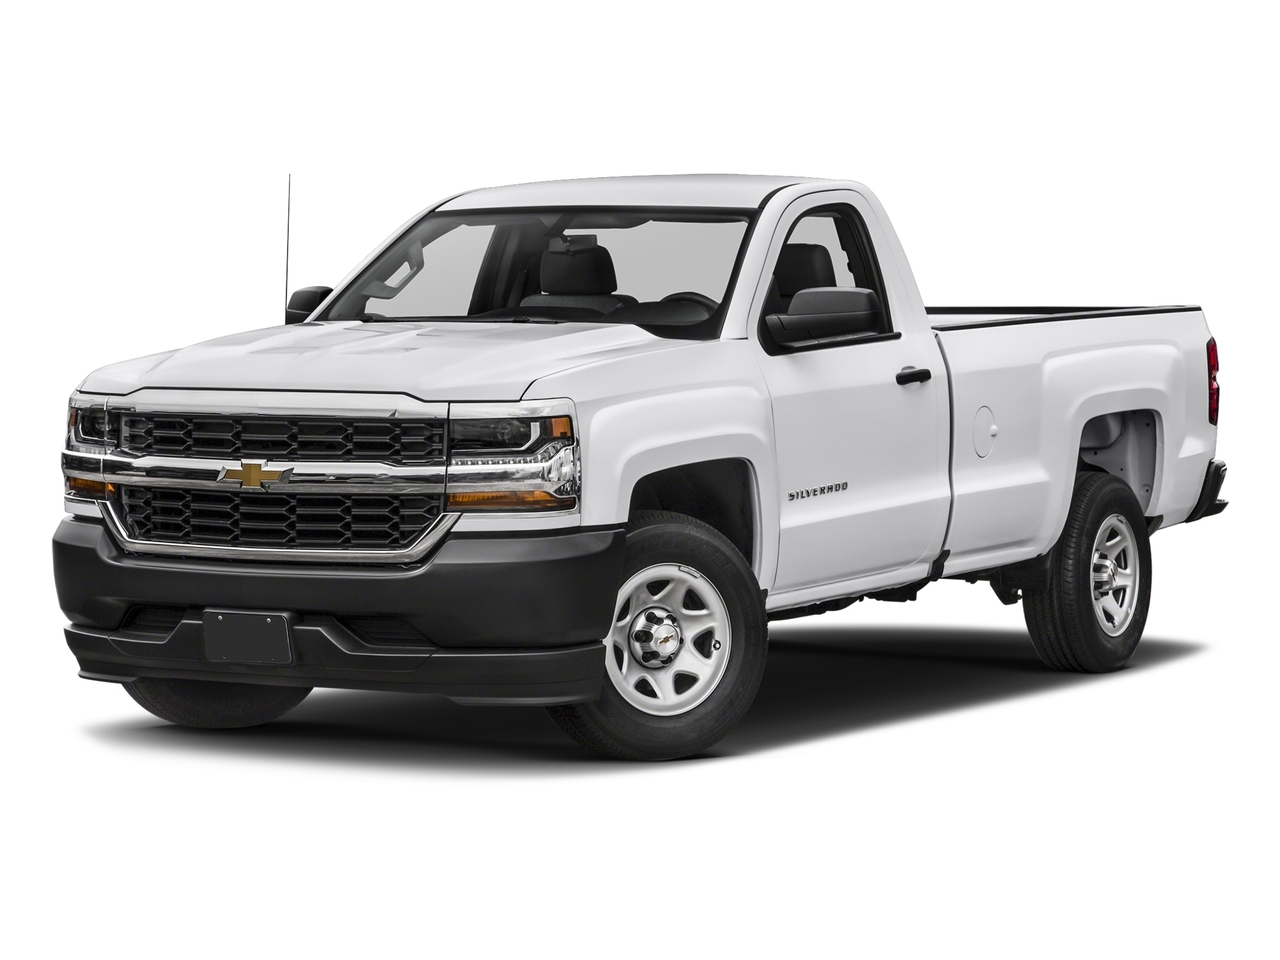 2018 Chevrolet Silverado 1500 WT Regular Cab Pickup Slide